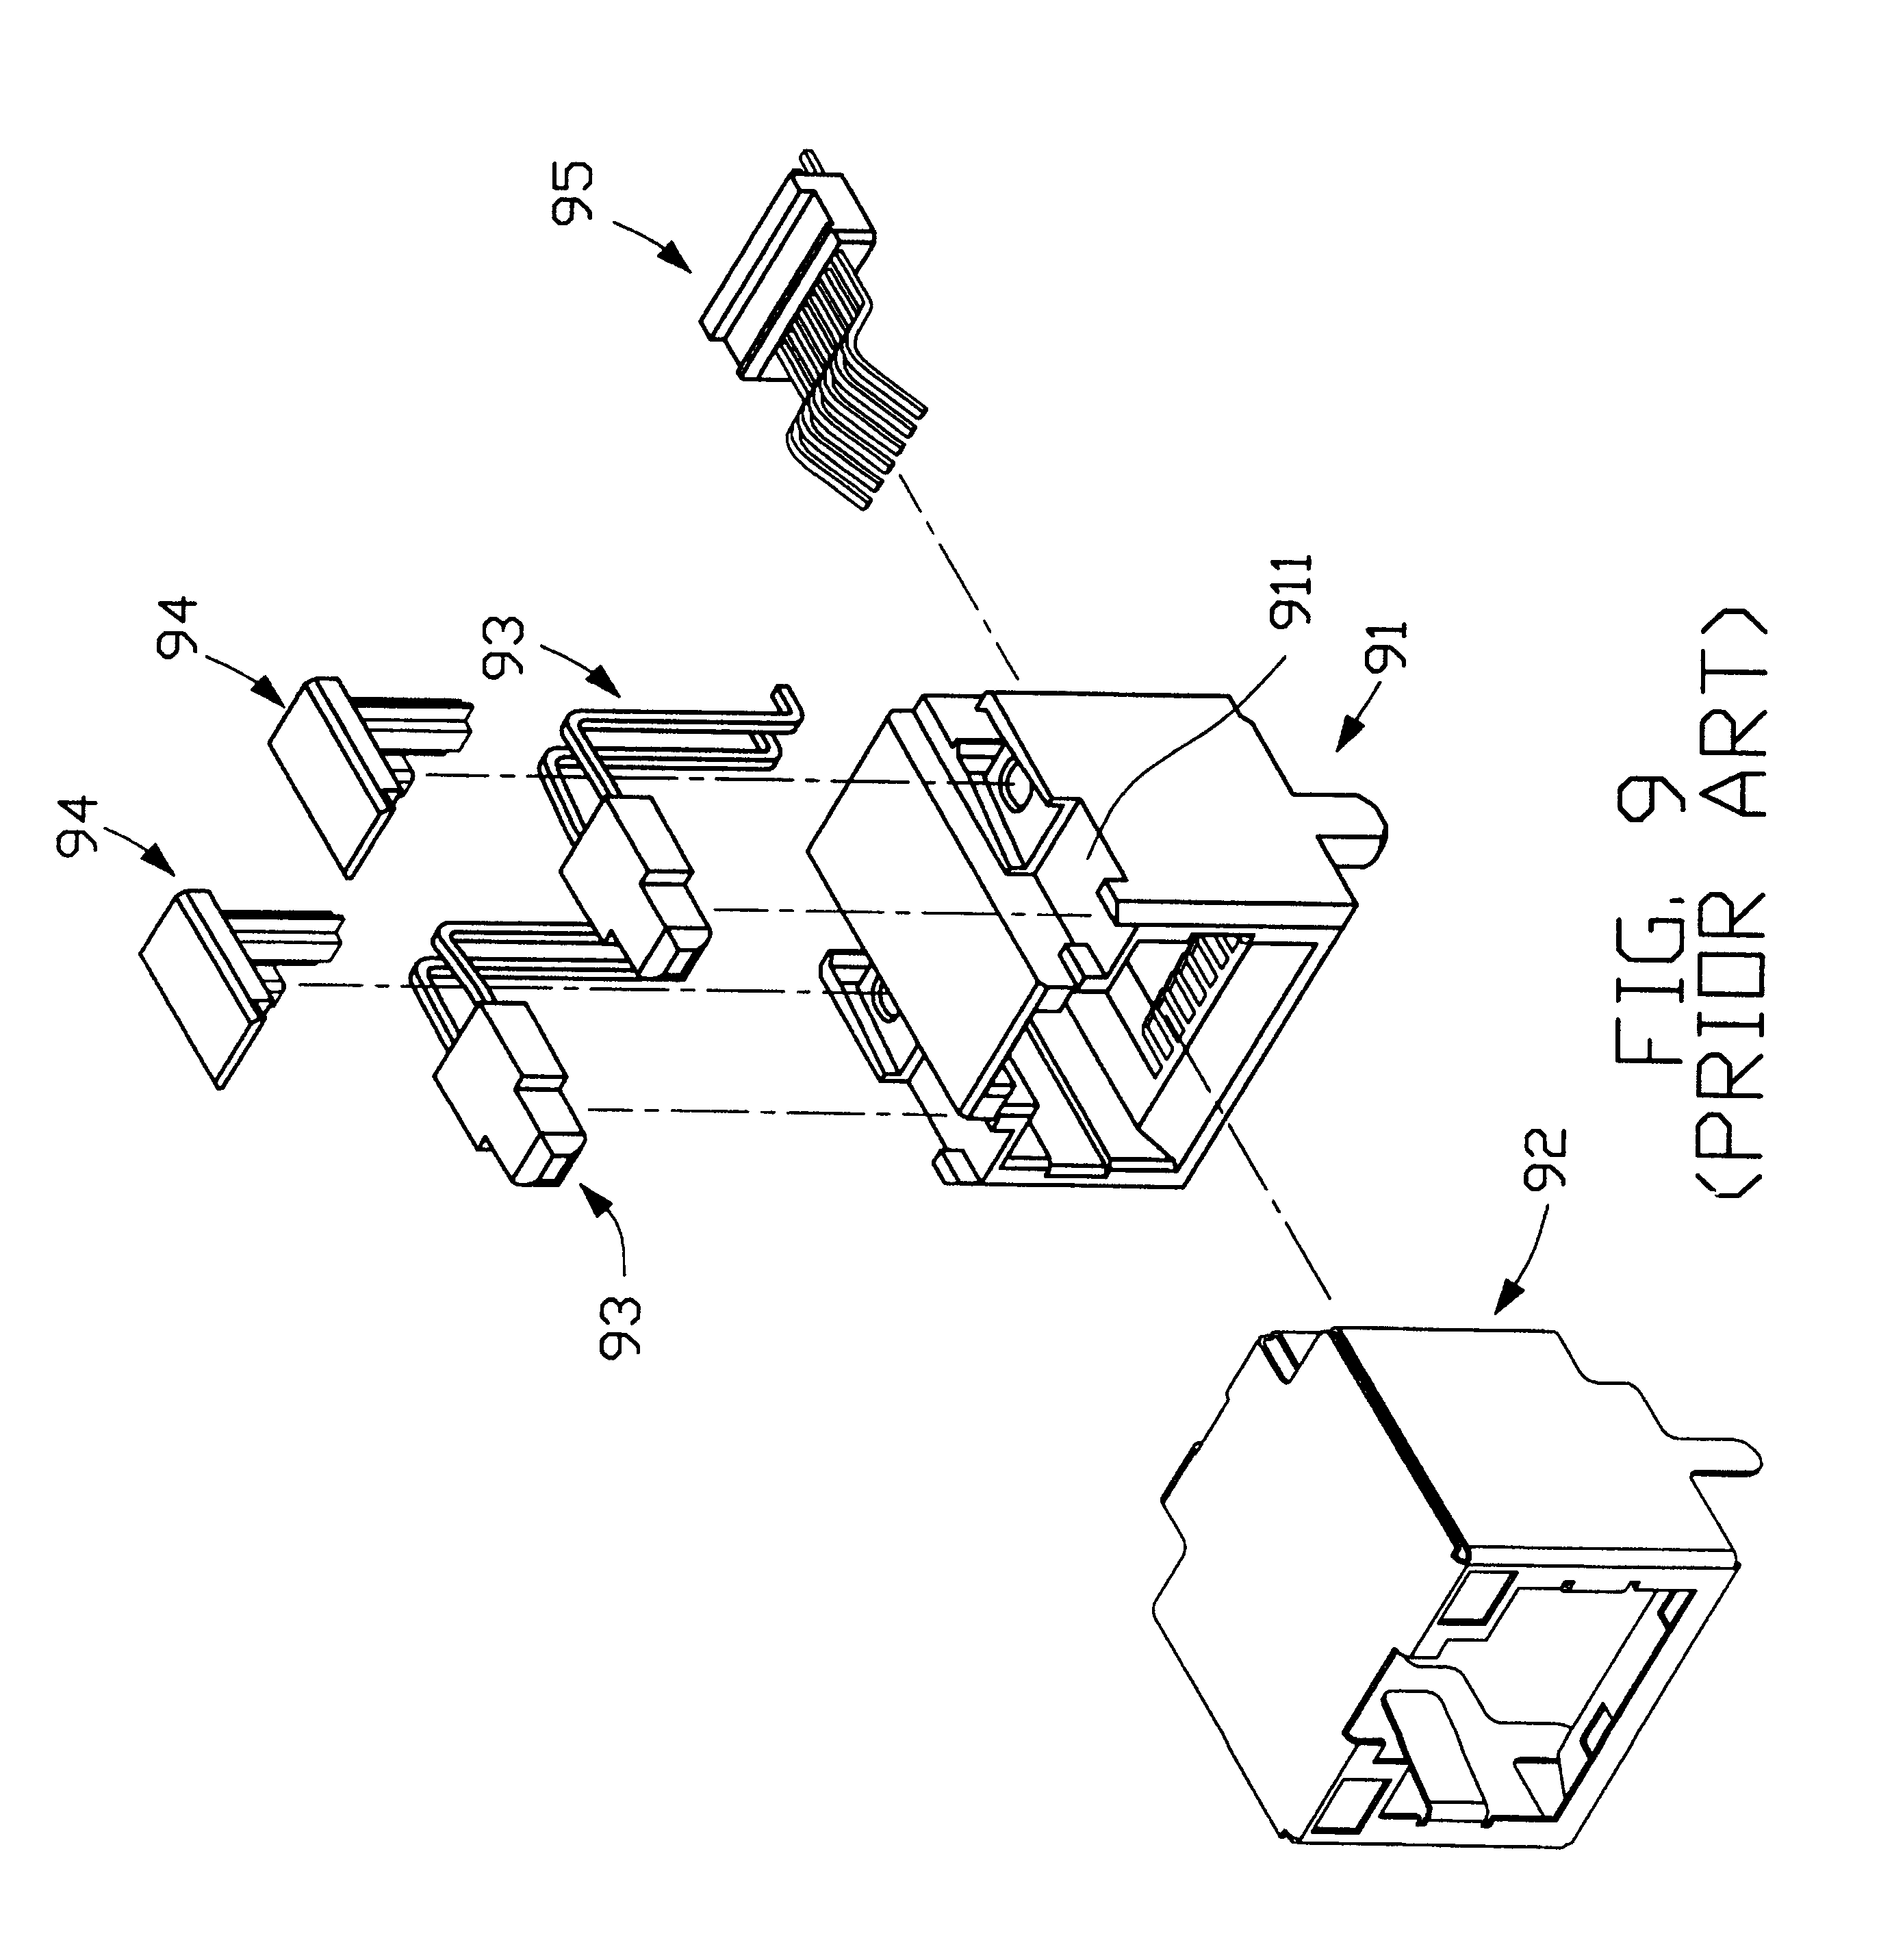 US6478610B1 - Electrical connector embly - Google Patents on